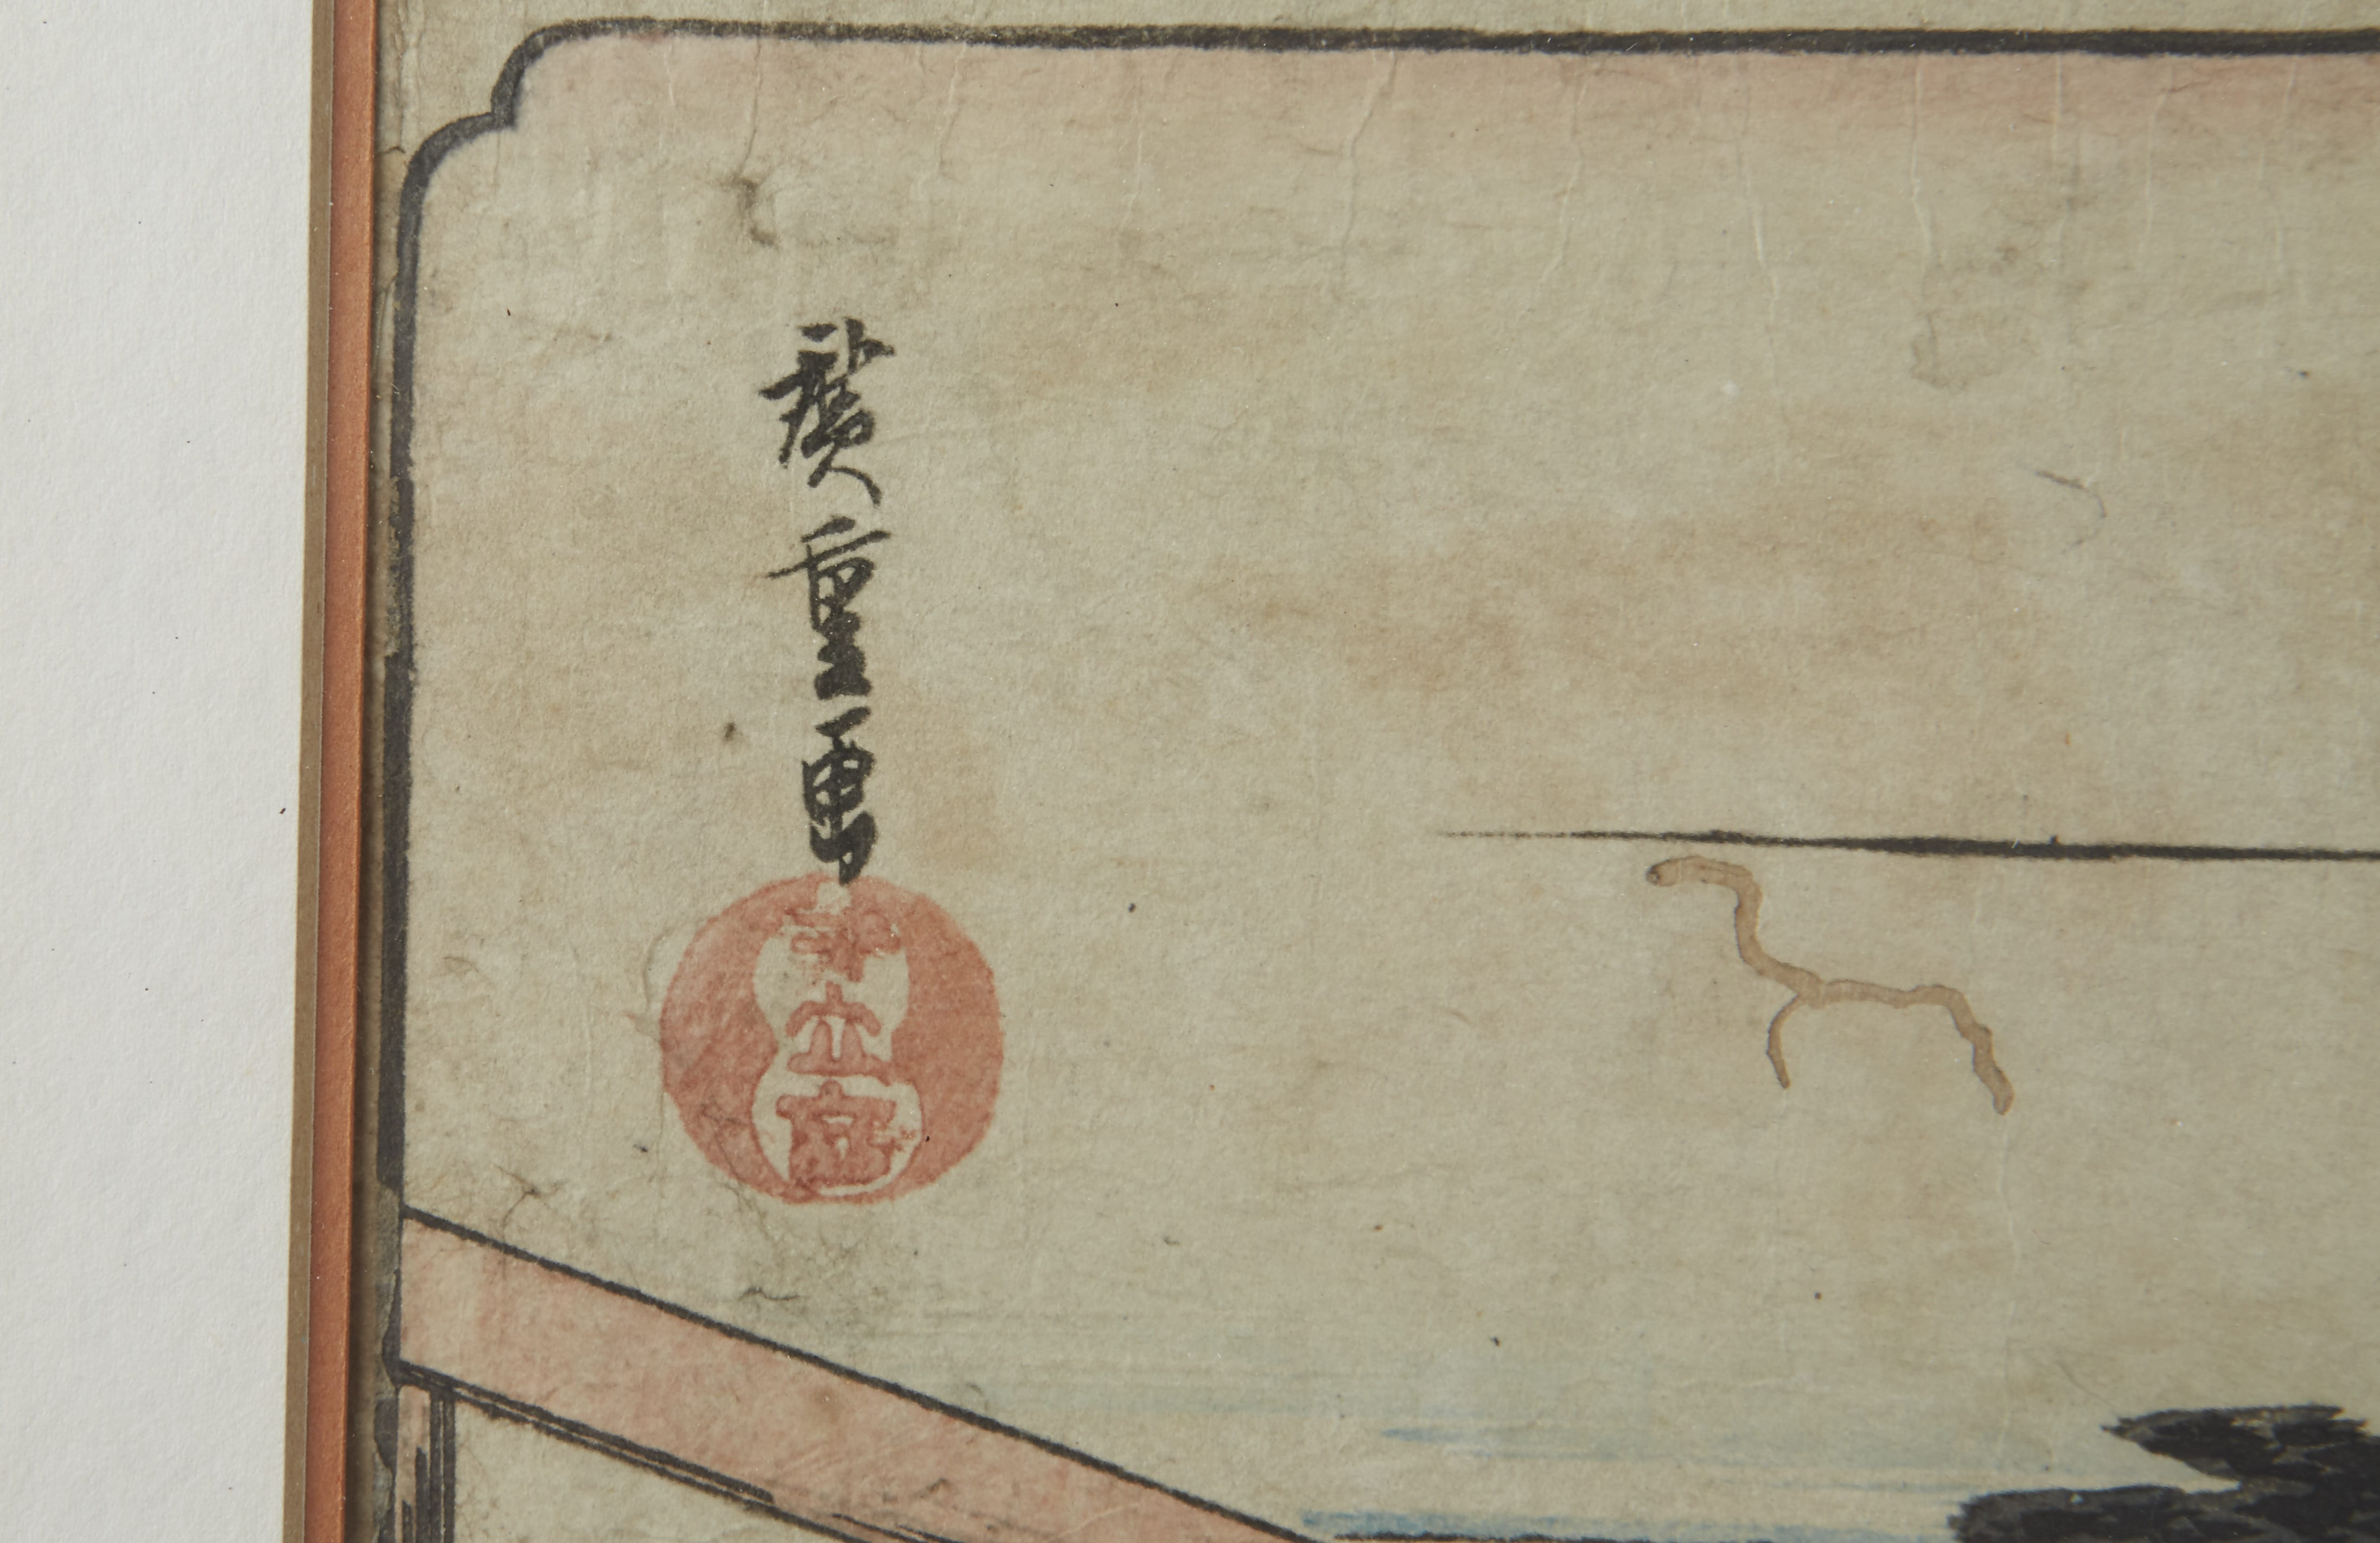 Lot 252: Group of two framed Japanese woodblocks by Hiroshige and Tanaka